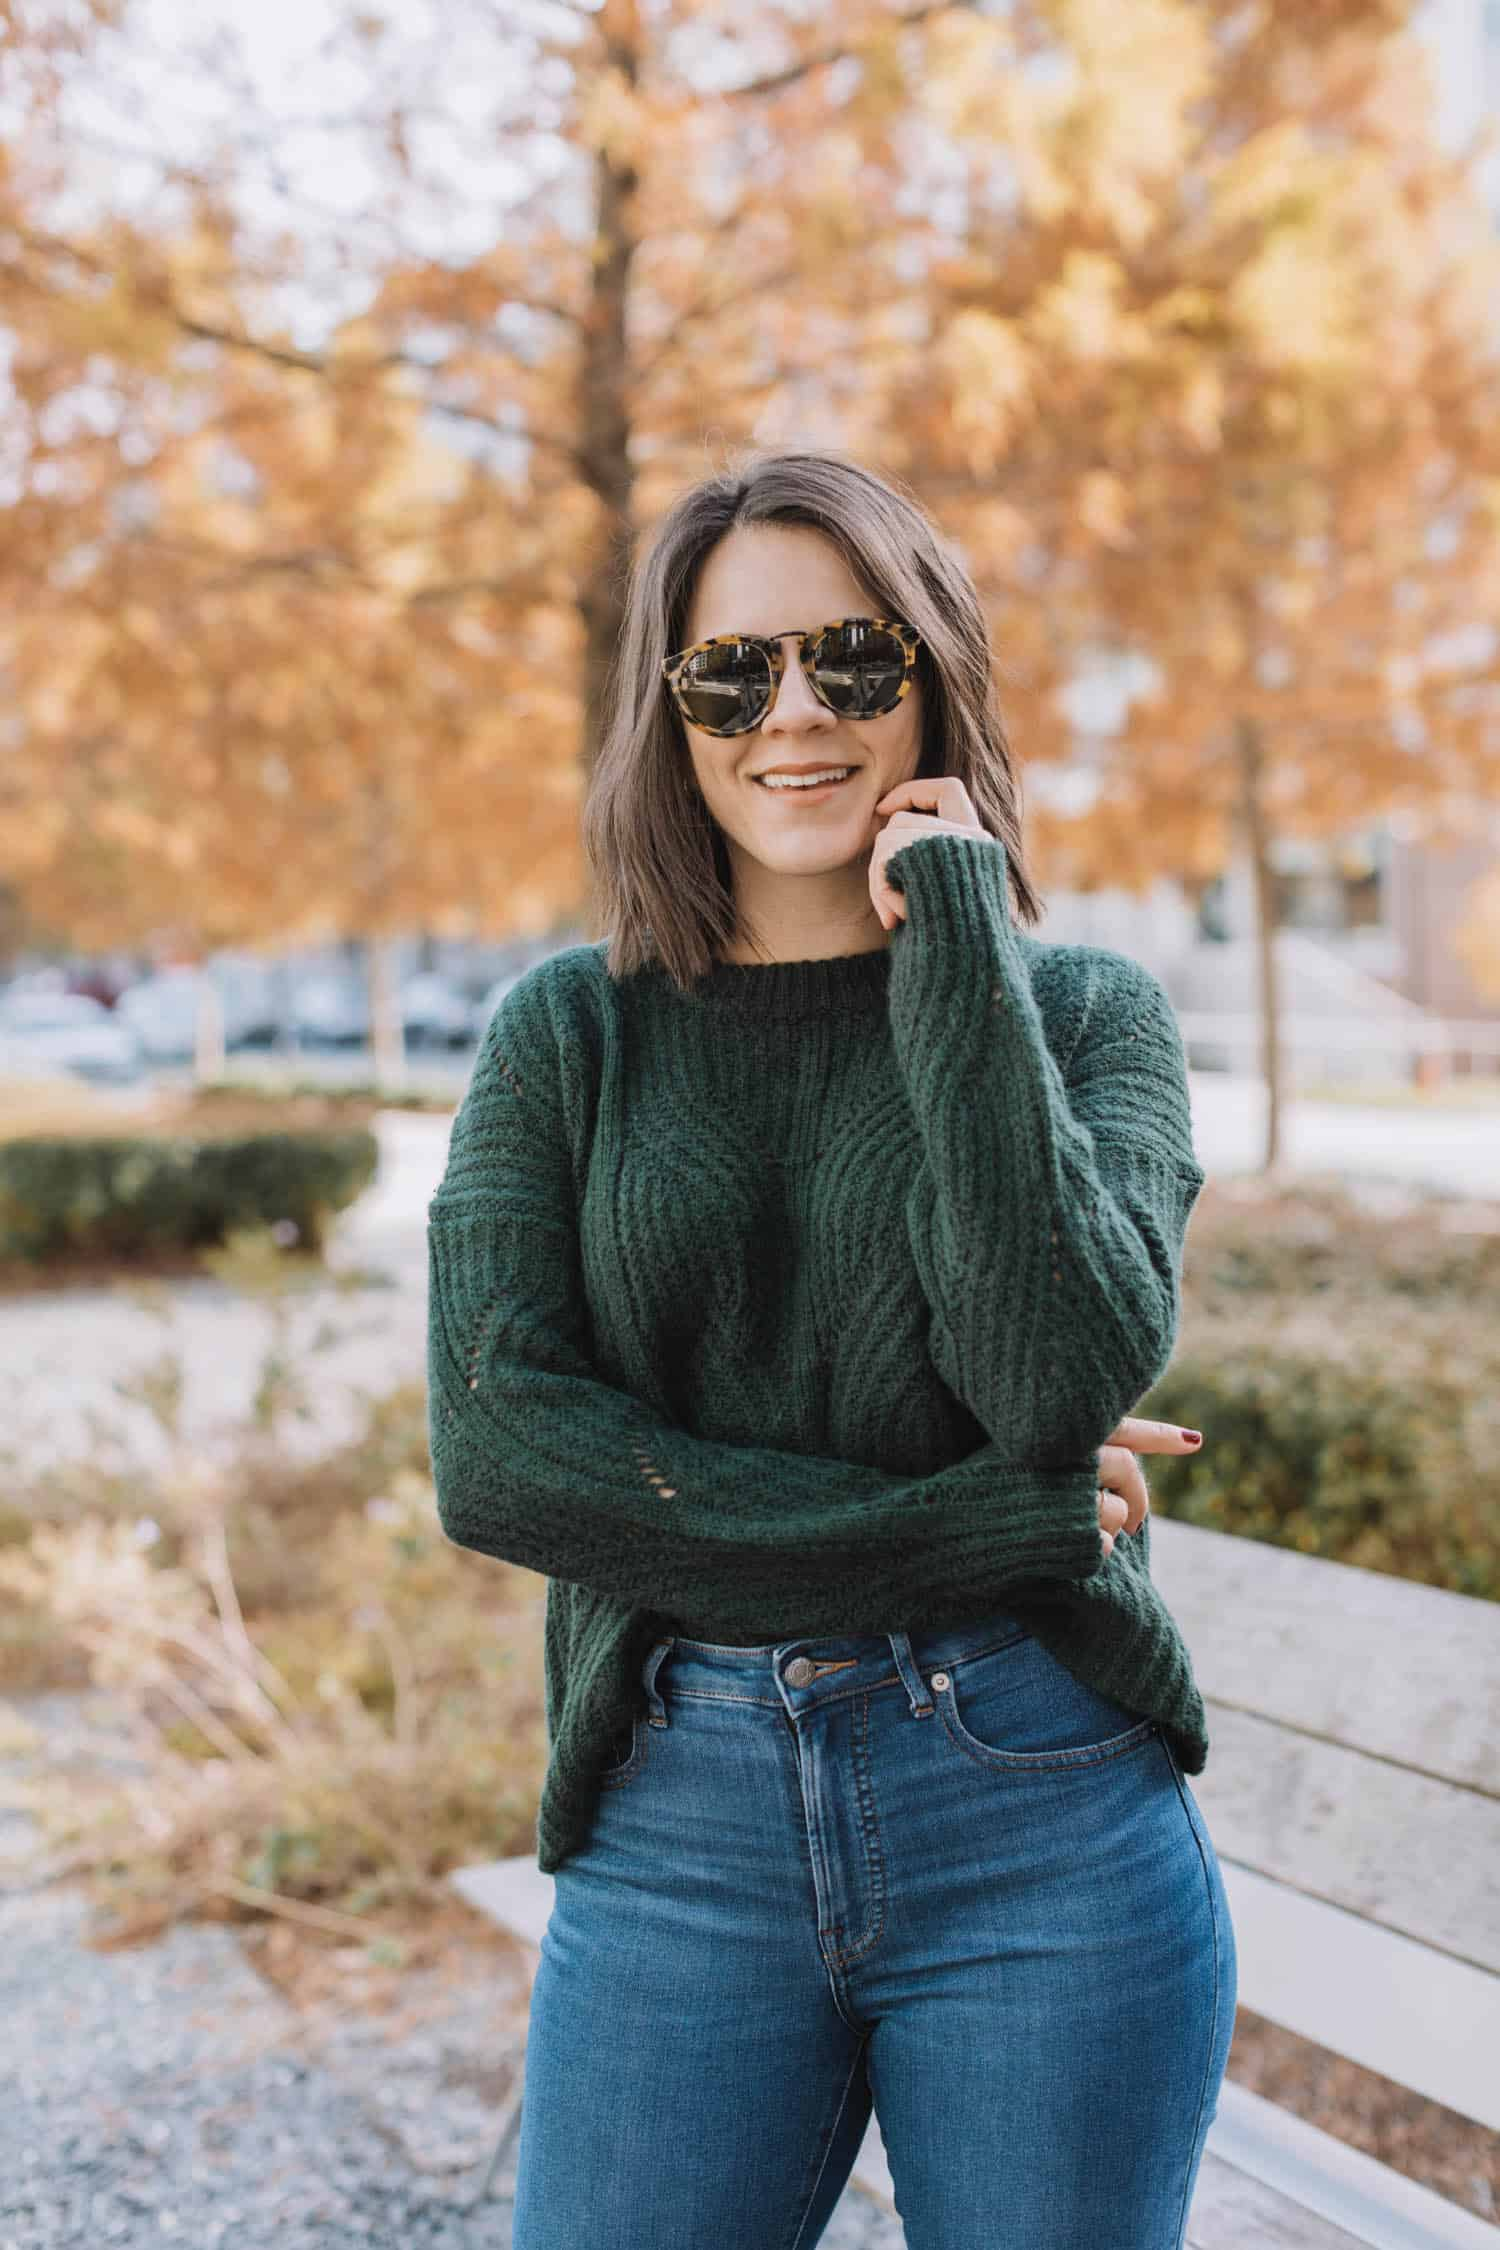 The Best Sweater For Winter